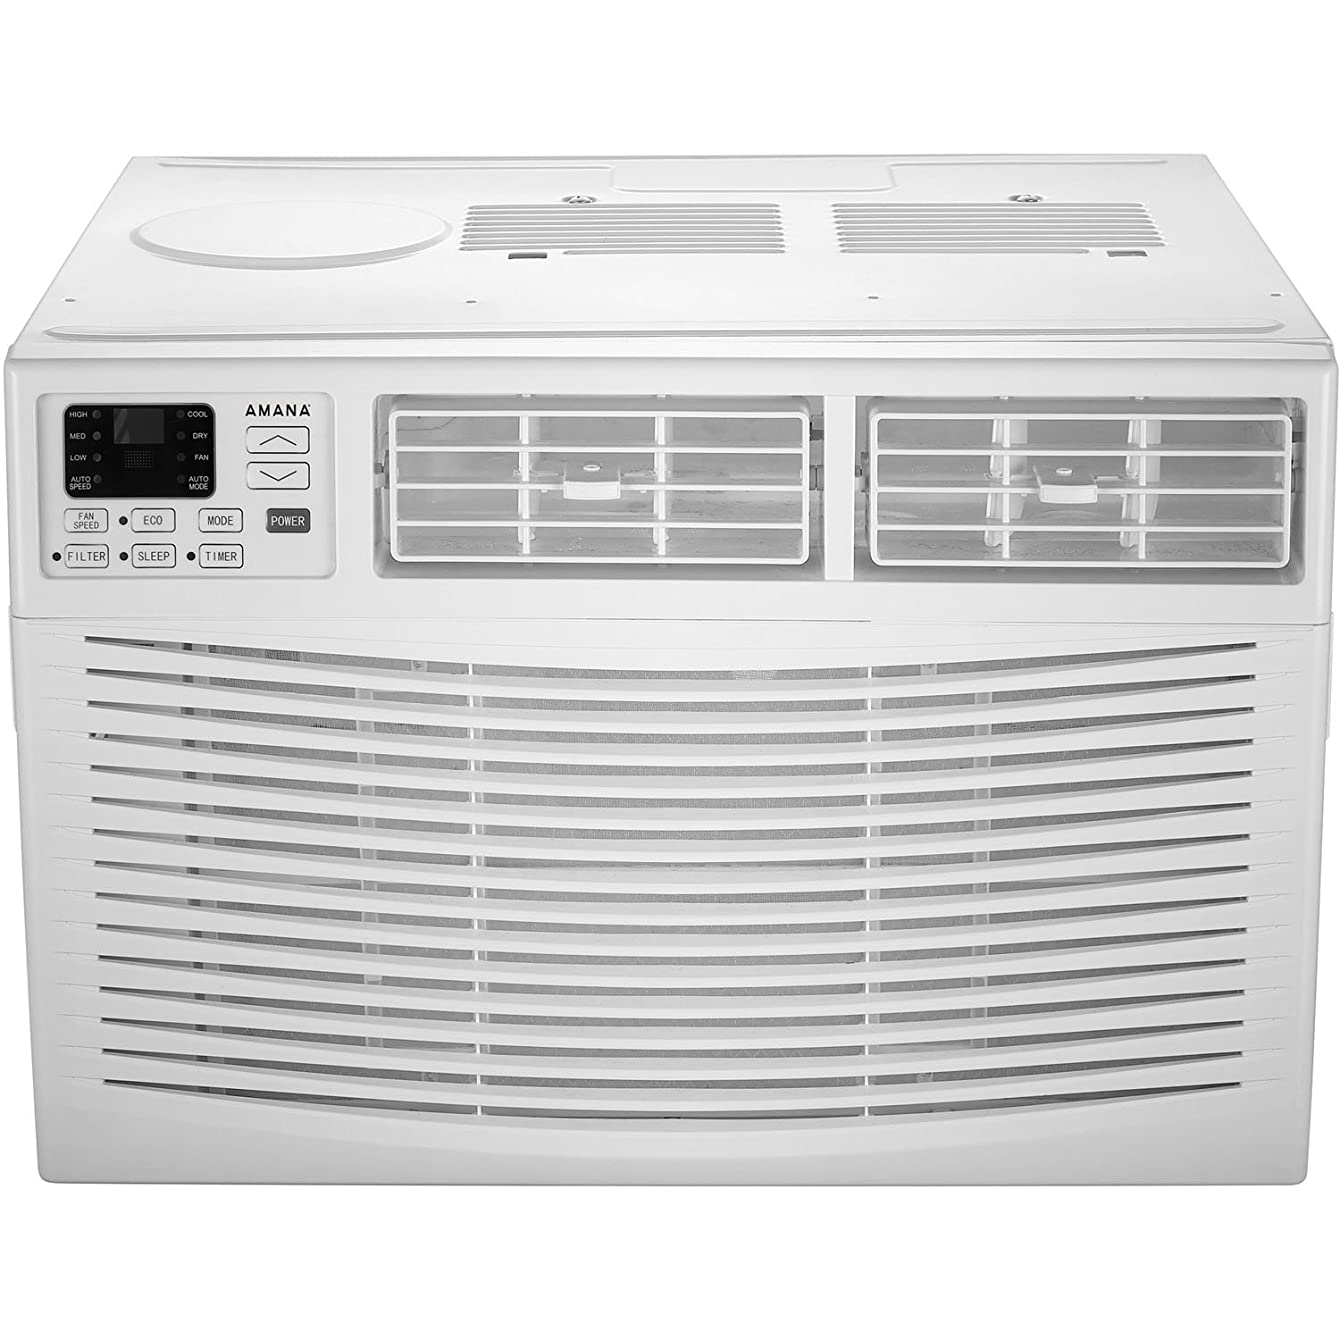 Amana 24,000 BTU 230V Window-Mounted Air Conditioner with Remote Control, White